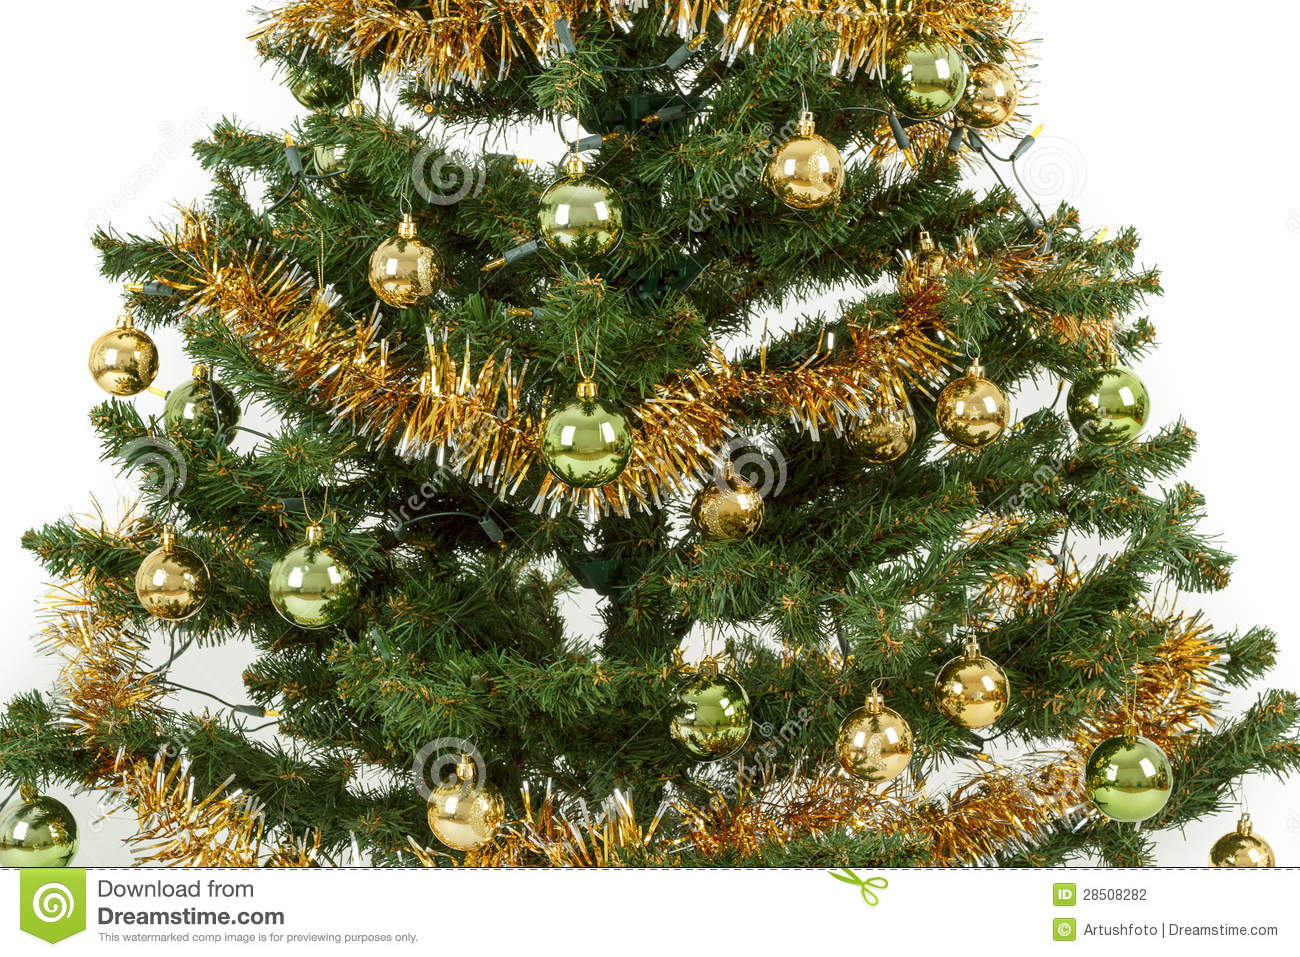 Decorated christmas tree with yellow and green balls stock for Green and white decorated christmas trees